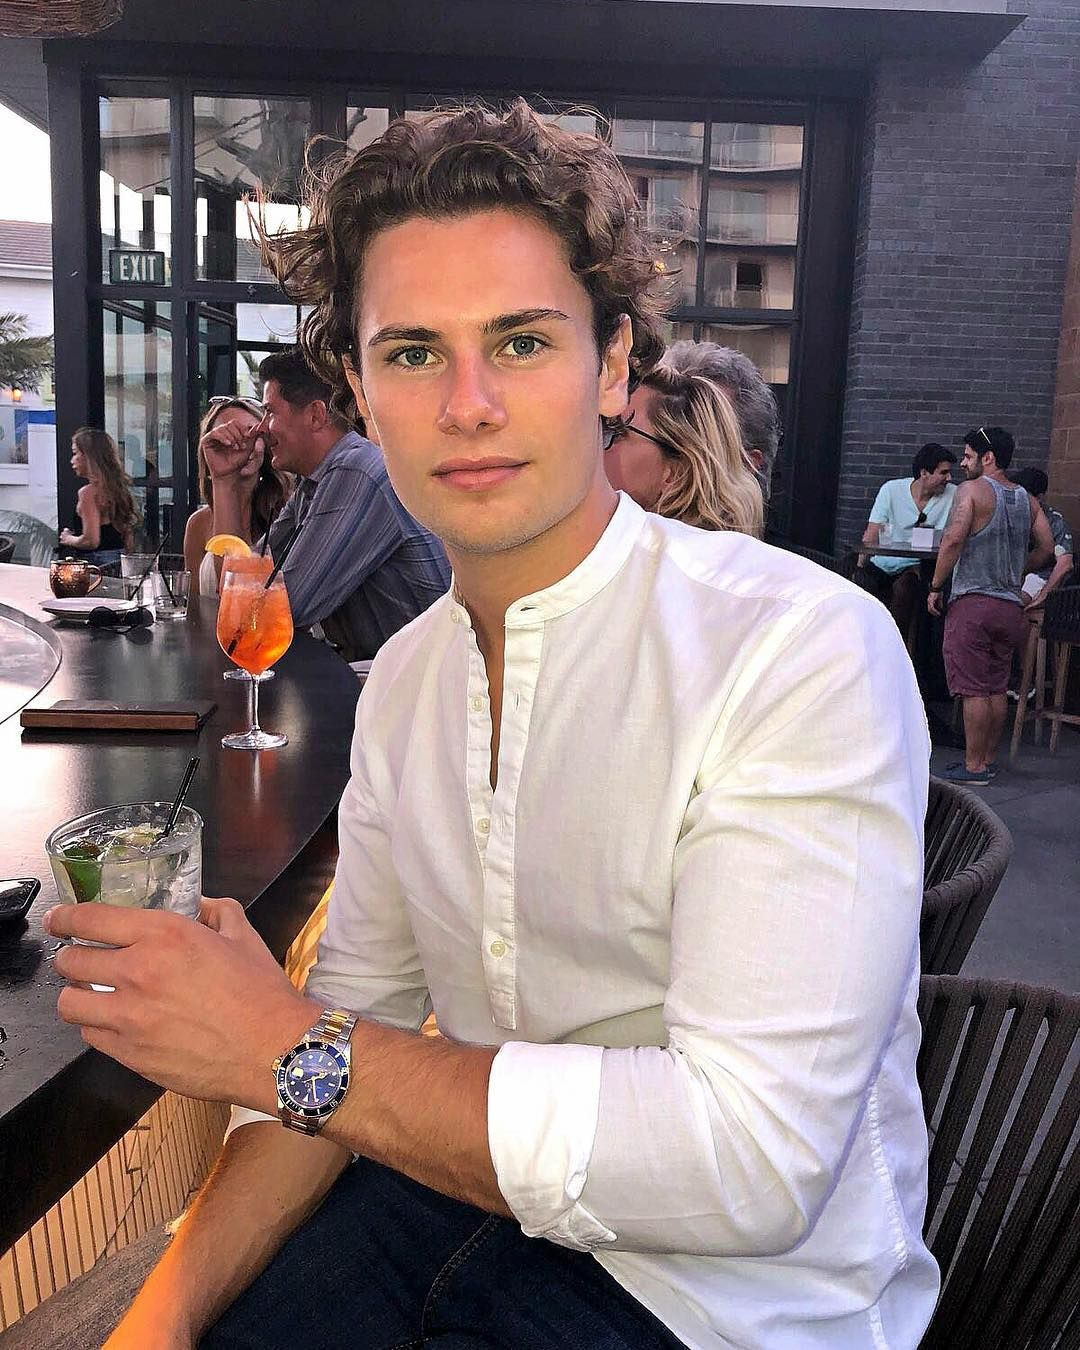 Image may contain: Love Island 2019 Instagrams, Joe Garratt, Instagram, Love Island, 2019, contestant, Islander, cast list, line up, Cafe, Food, Food Court, Cocktail, Alcohol, Beverage, Drink, Glass, Bar Counter, Pub, Restaurant, Human, Person